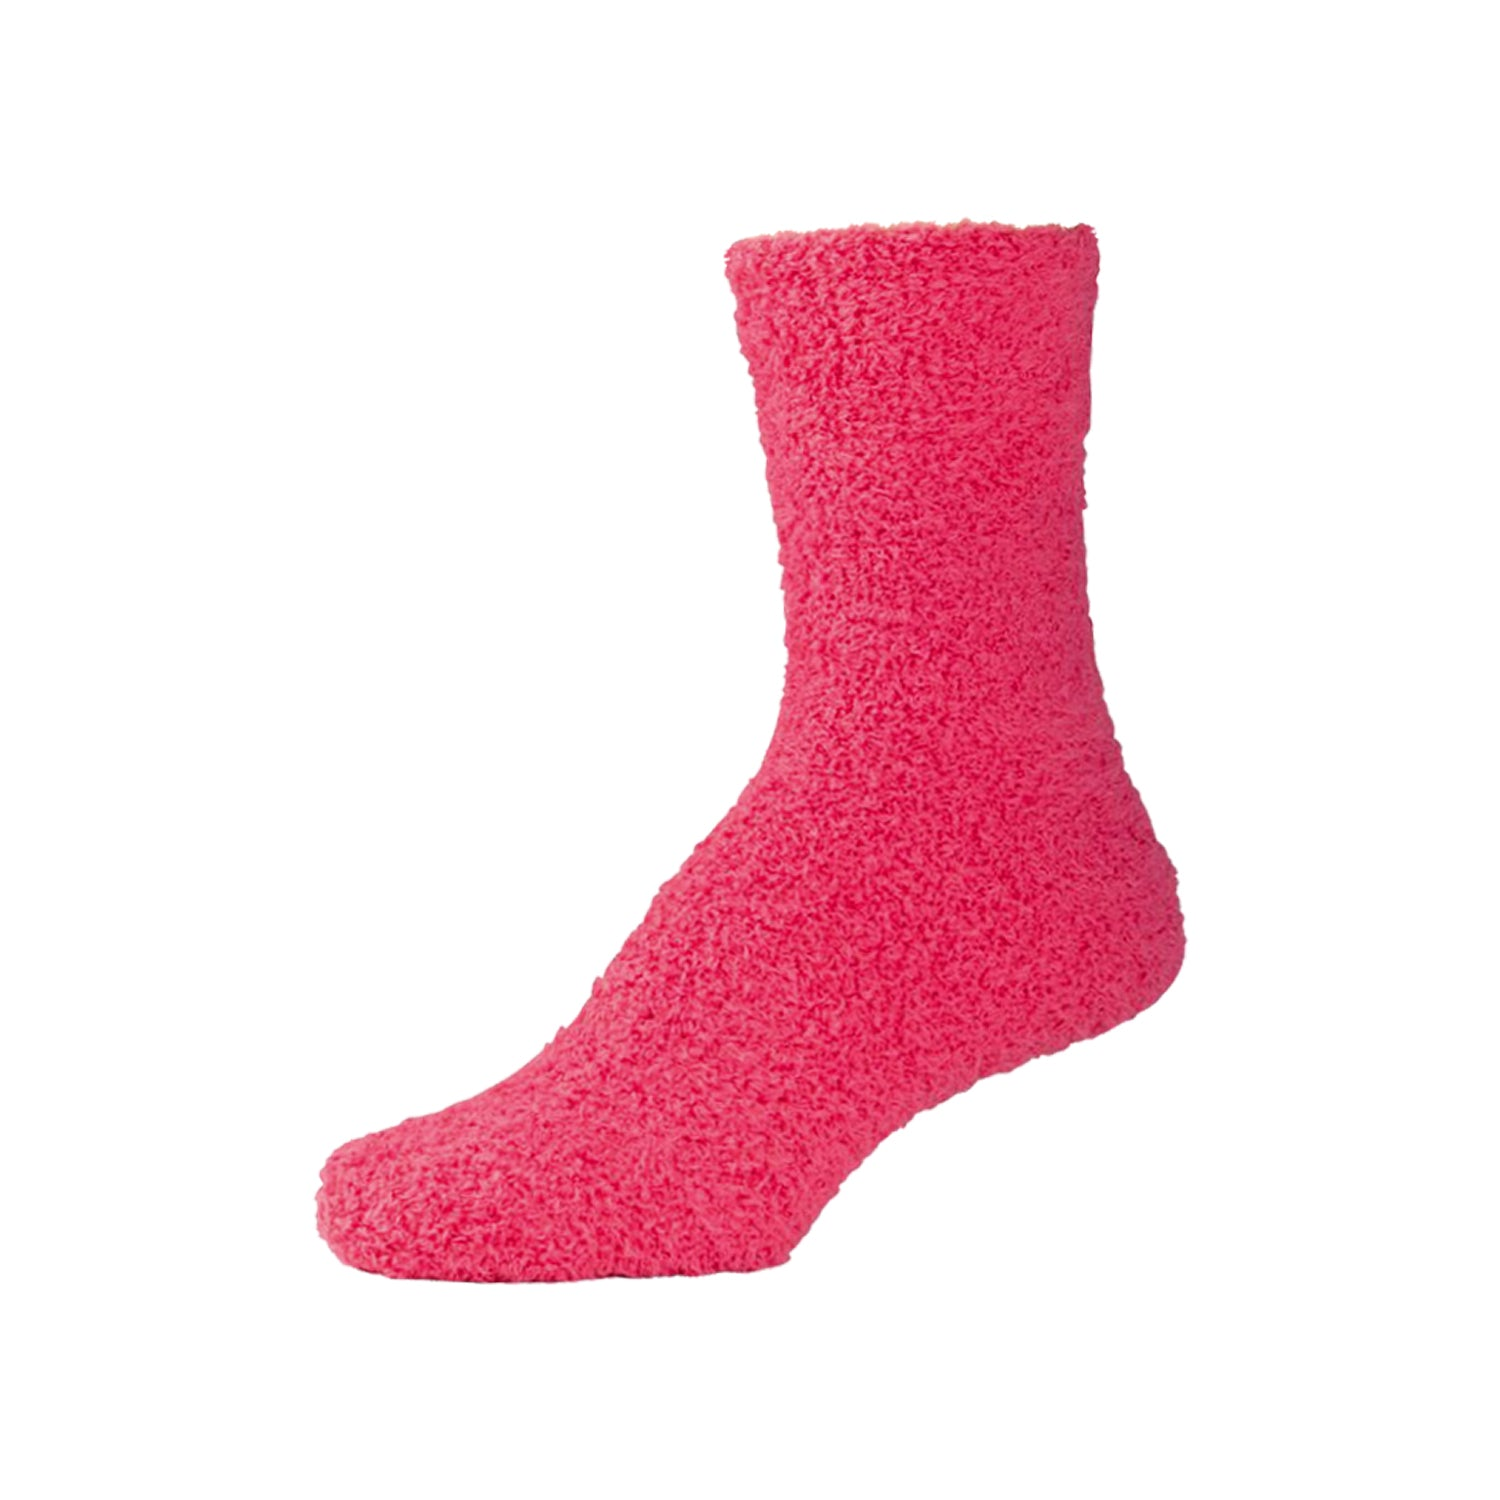 Womens Fluffy Dark Pink Fuzzy Socks